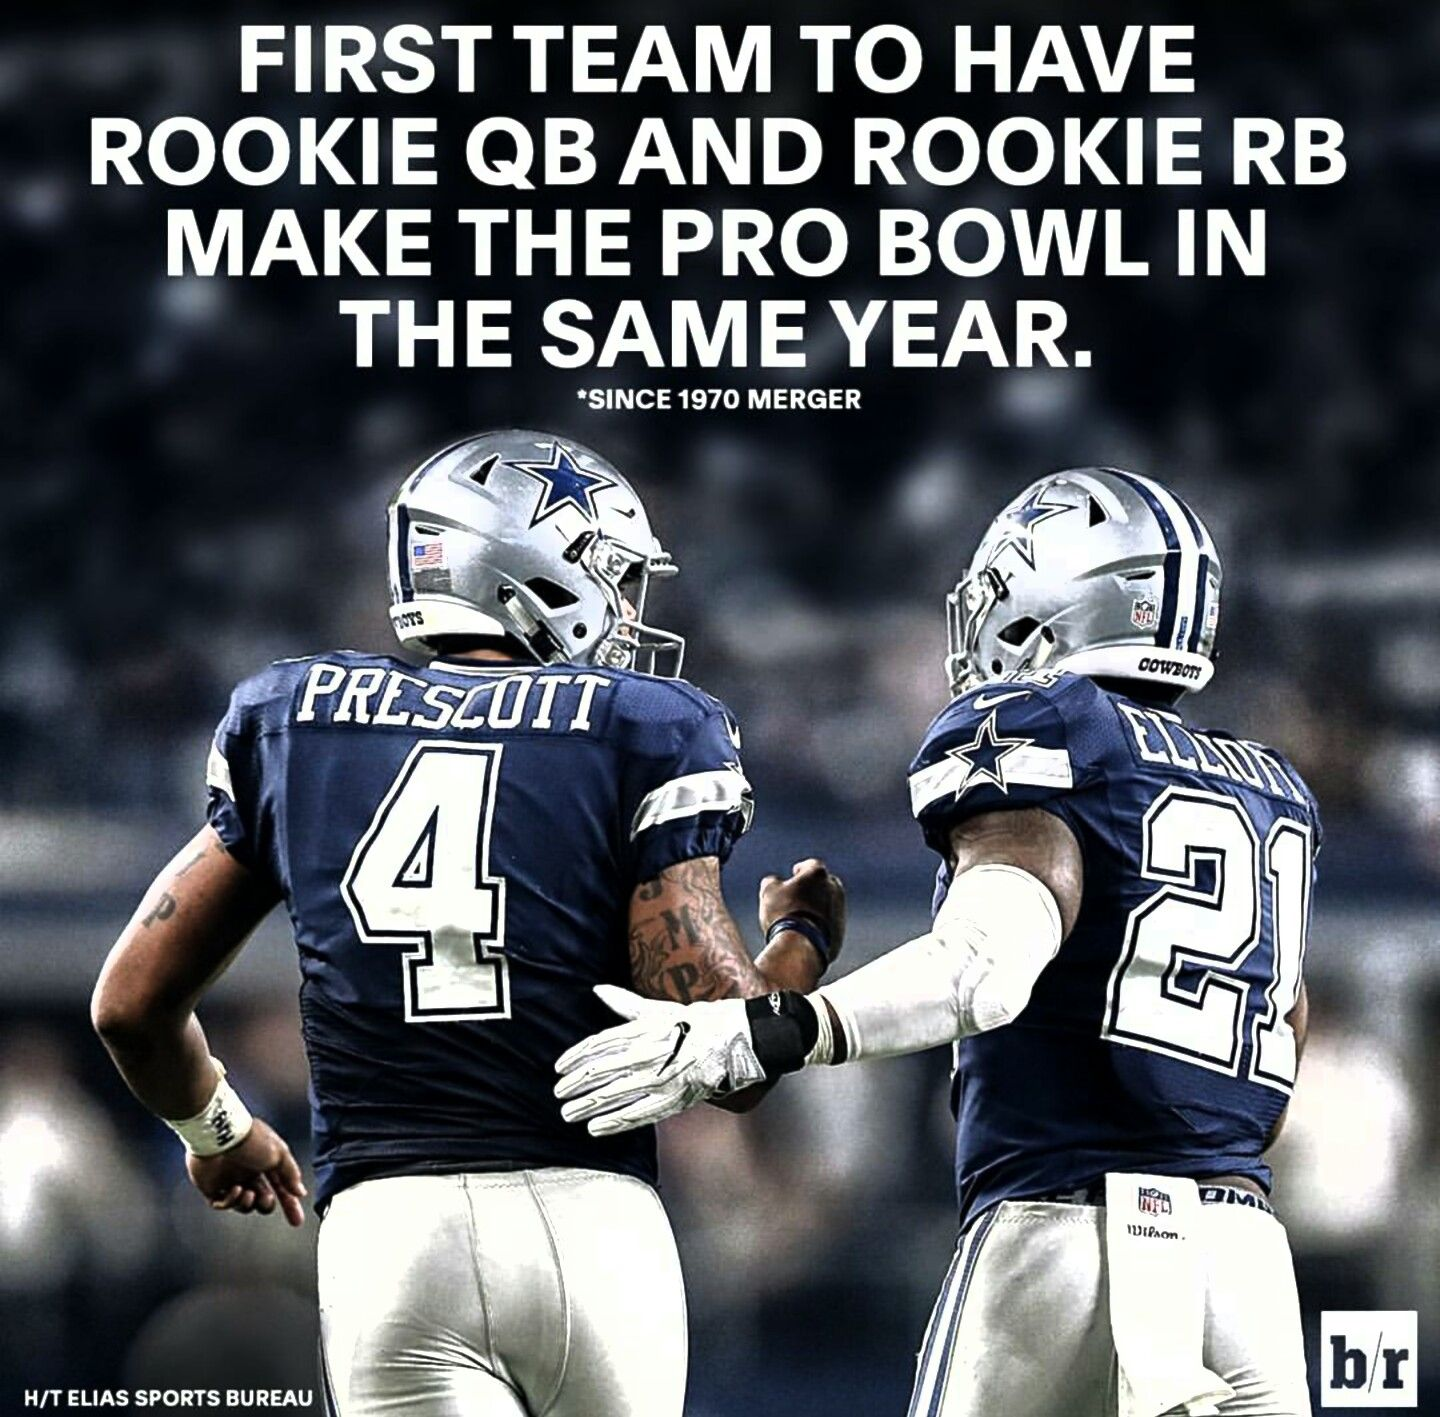 Pin By Cindy Warner On Dallas Cowboys 4life Dallas Cowboys Dallas Cowboys Football Dallas Cowboys Fans